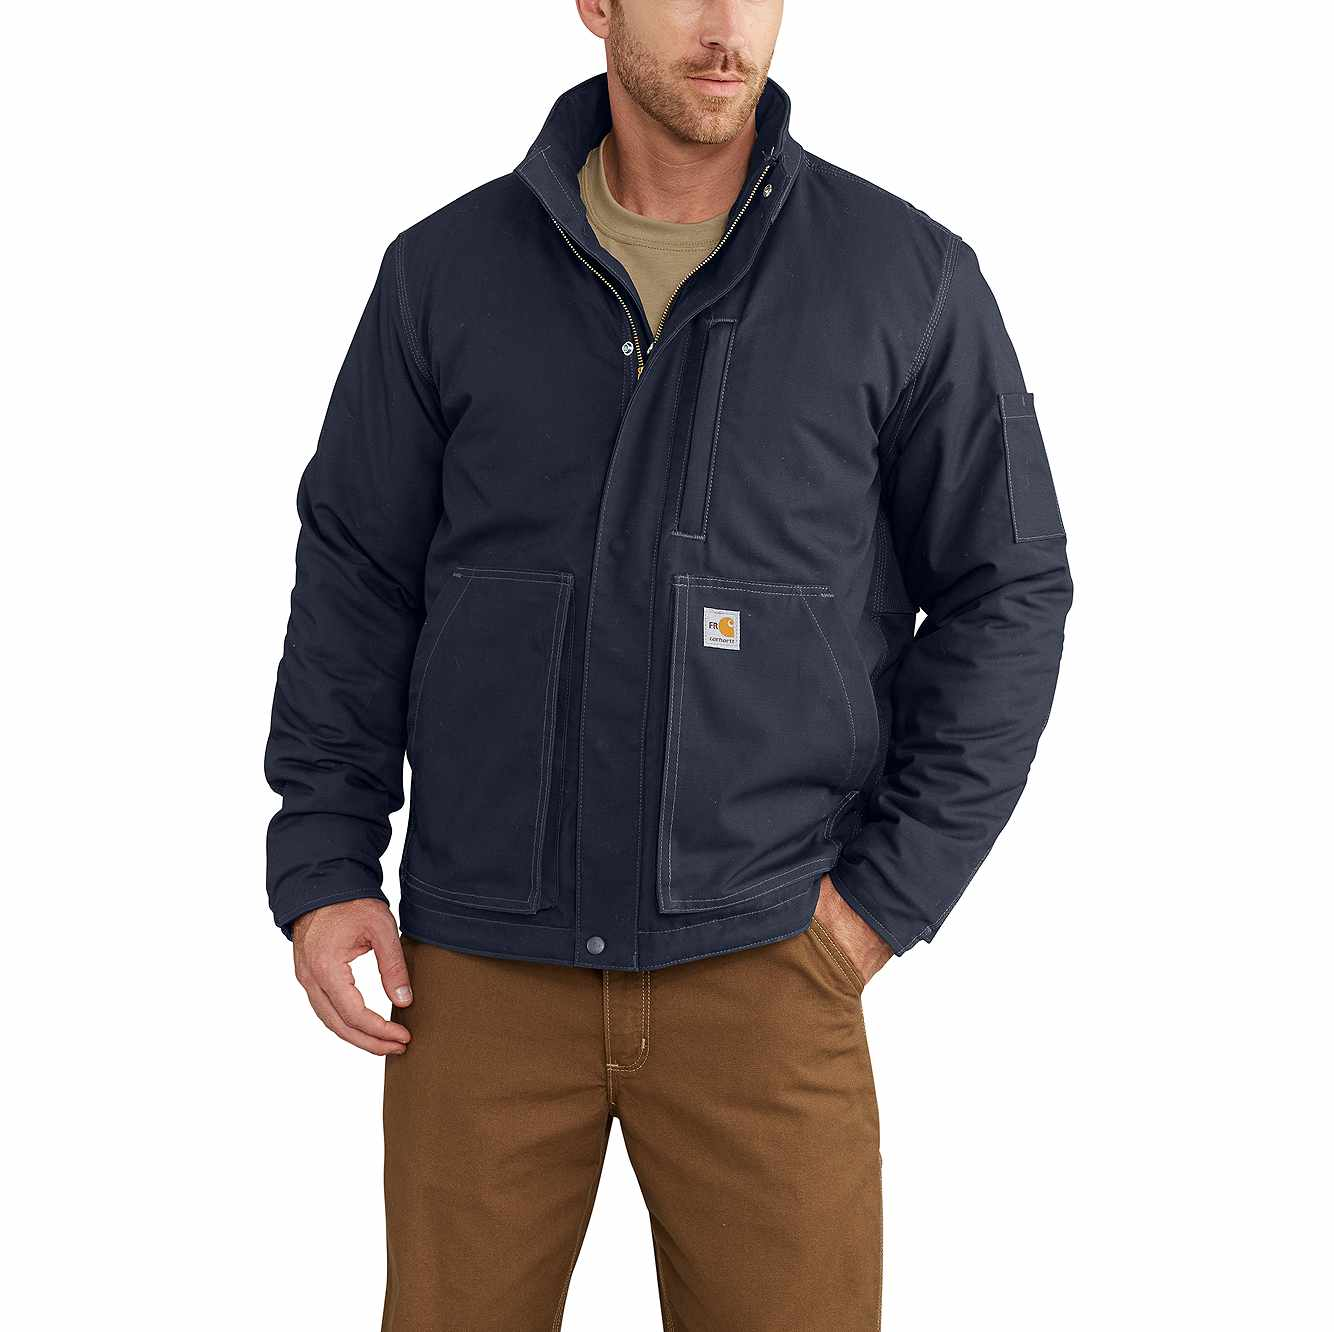 Picture of Full Swing® Quick Duck® Flame-Resistant Lanyard Access Jacket in Dark Navy